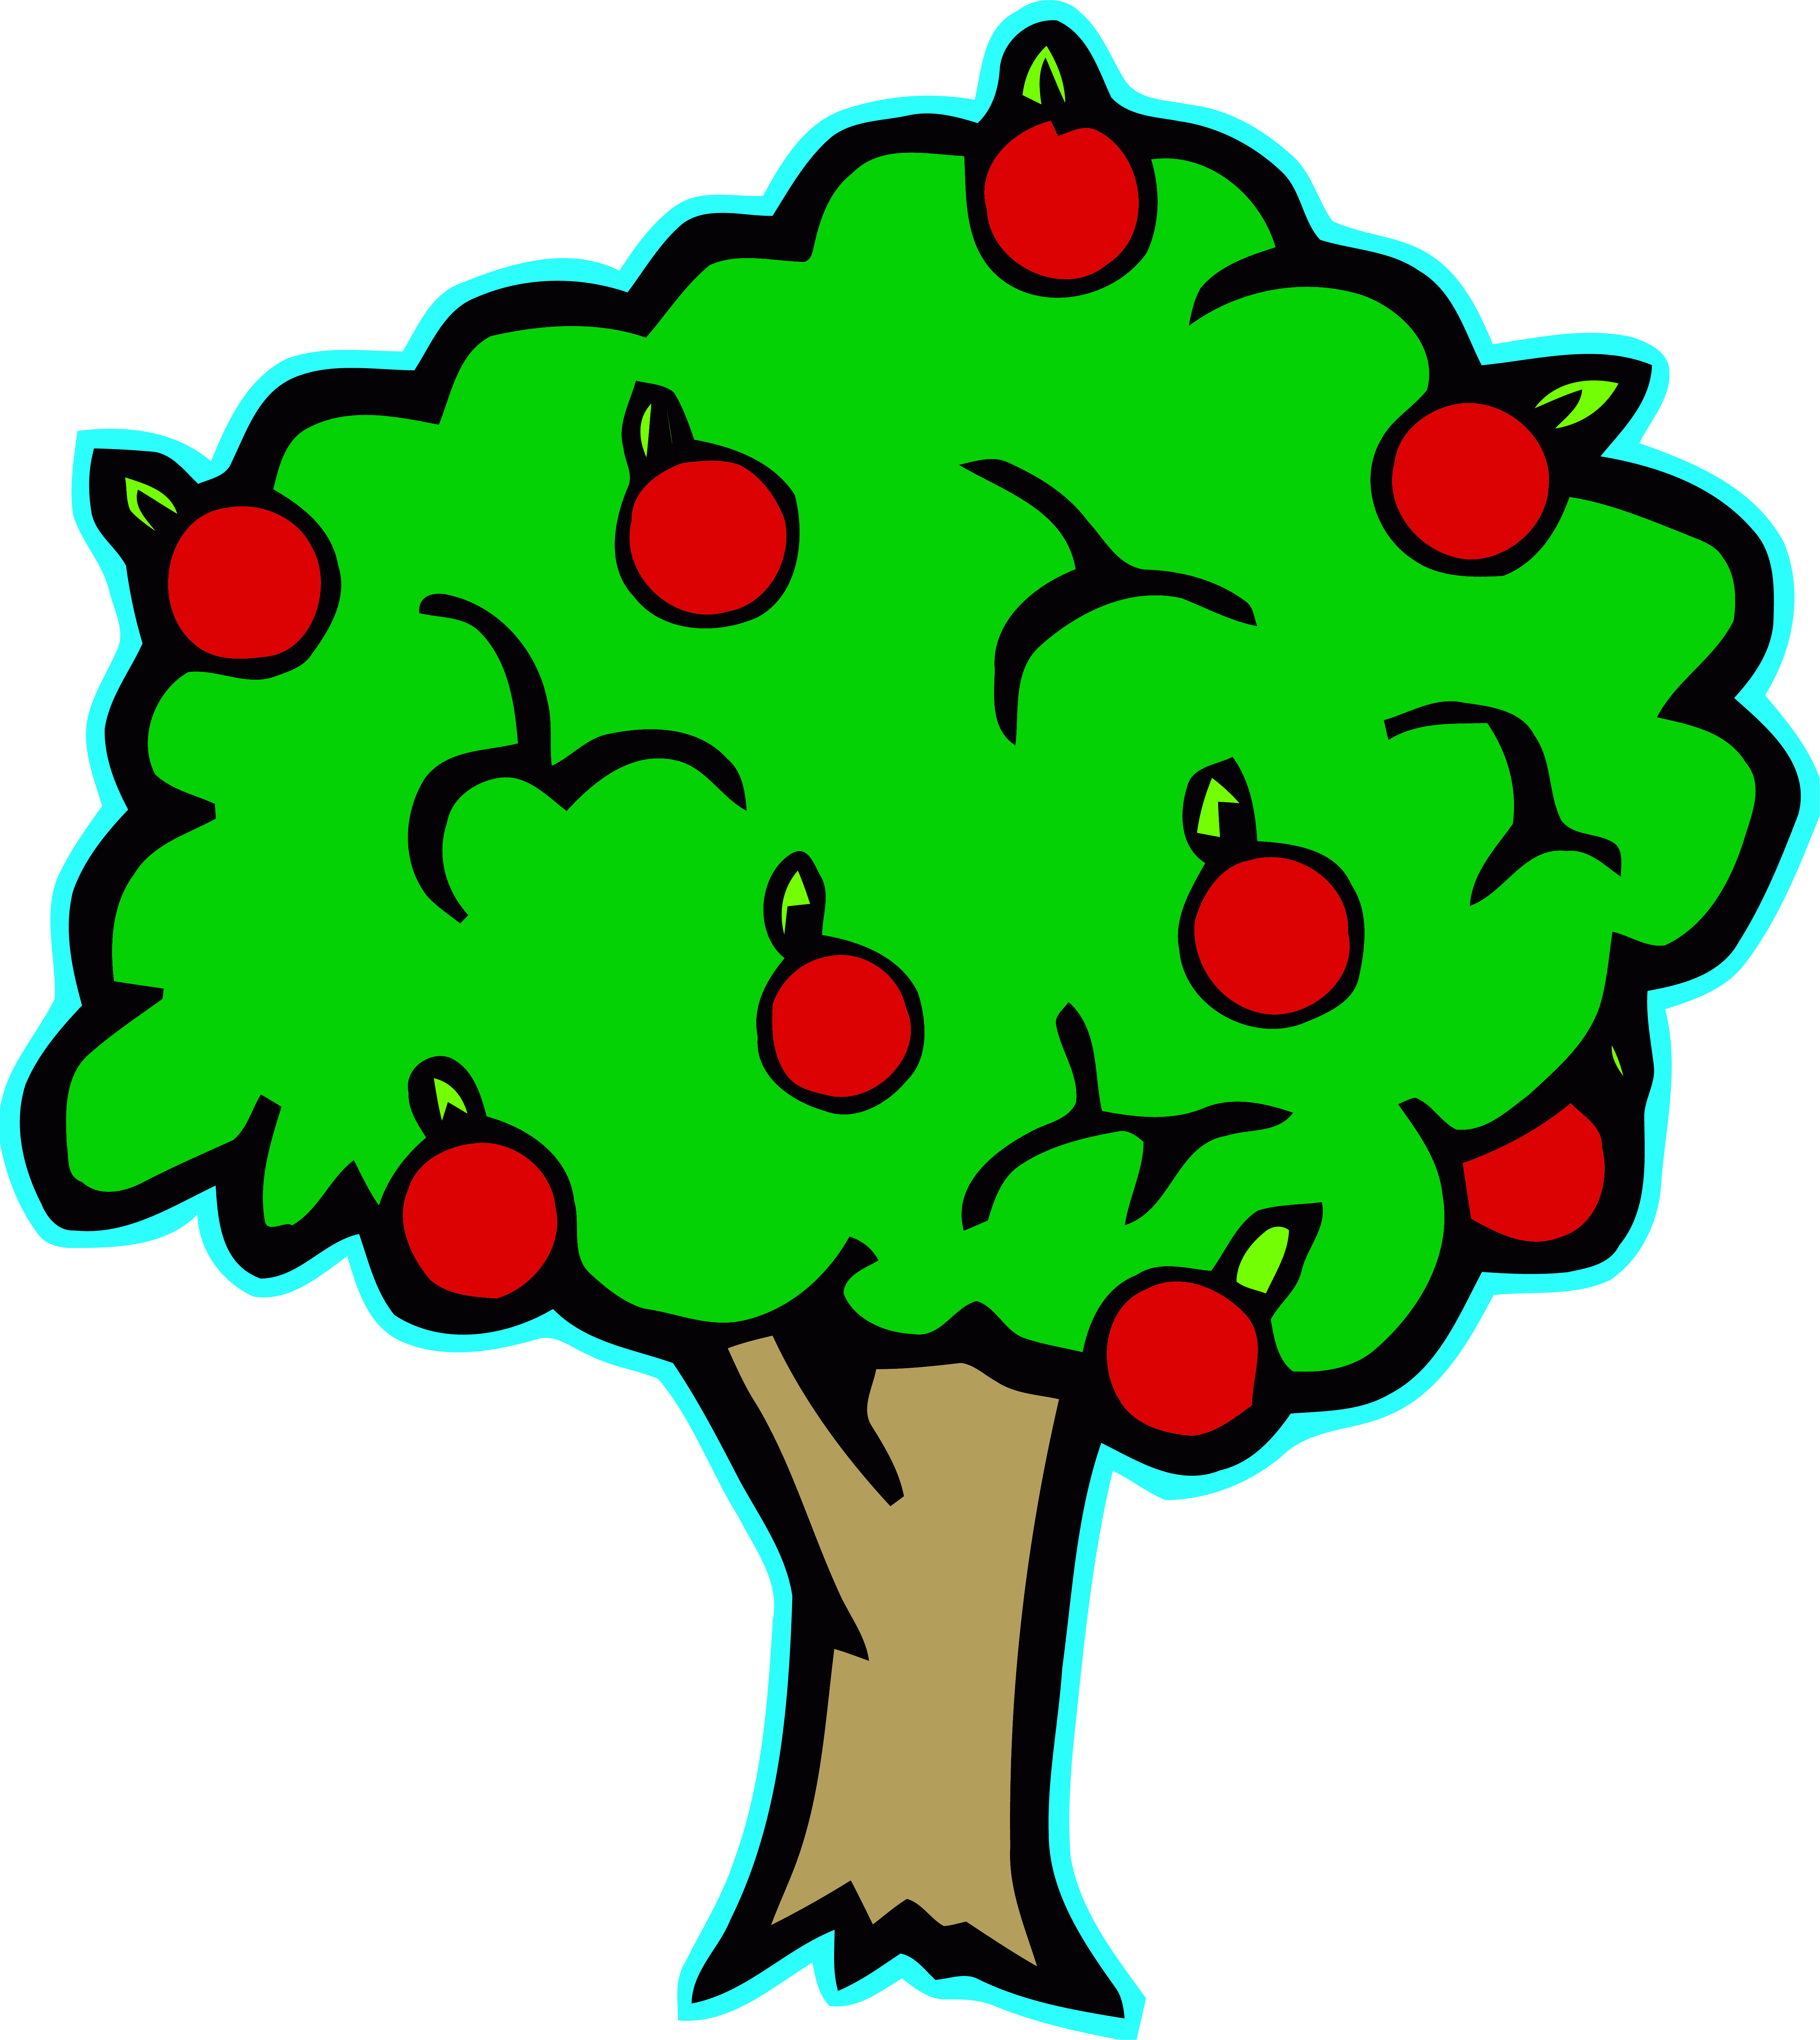 Apple tree clipart image svg library download Green Apple Tree Clipart Apple Cartoon Cute Png – Clipartly.com svg library download